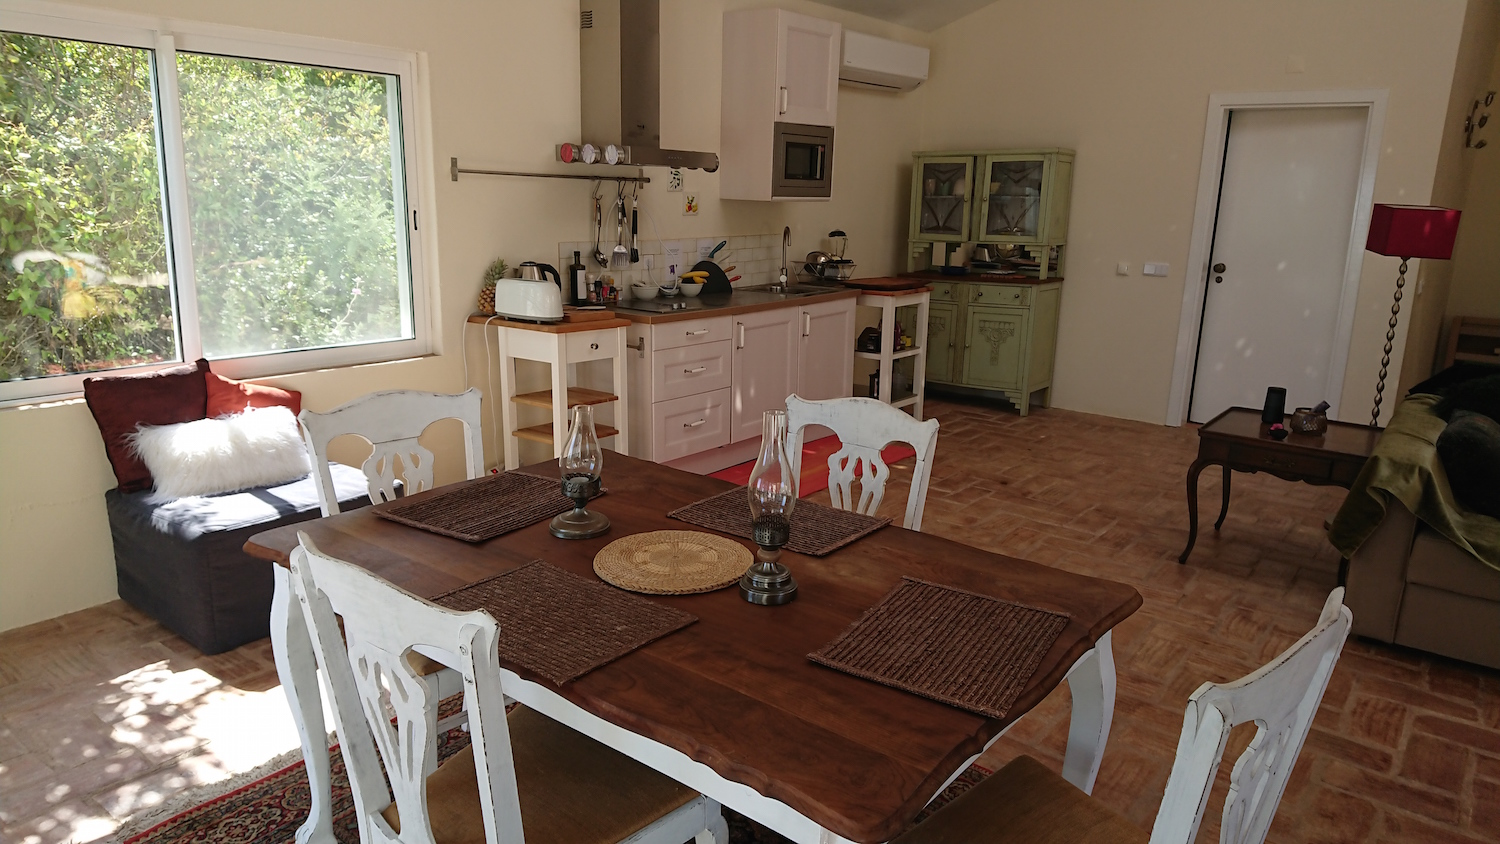 View of kitchen from dining area copy.JPG